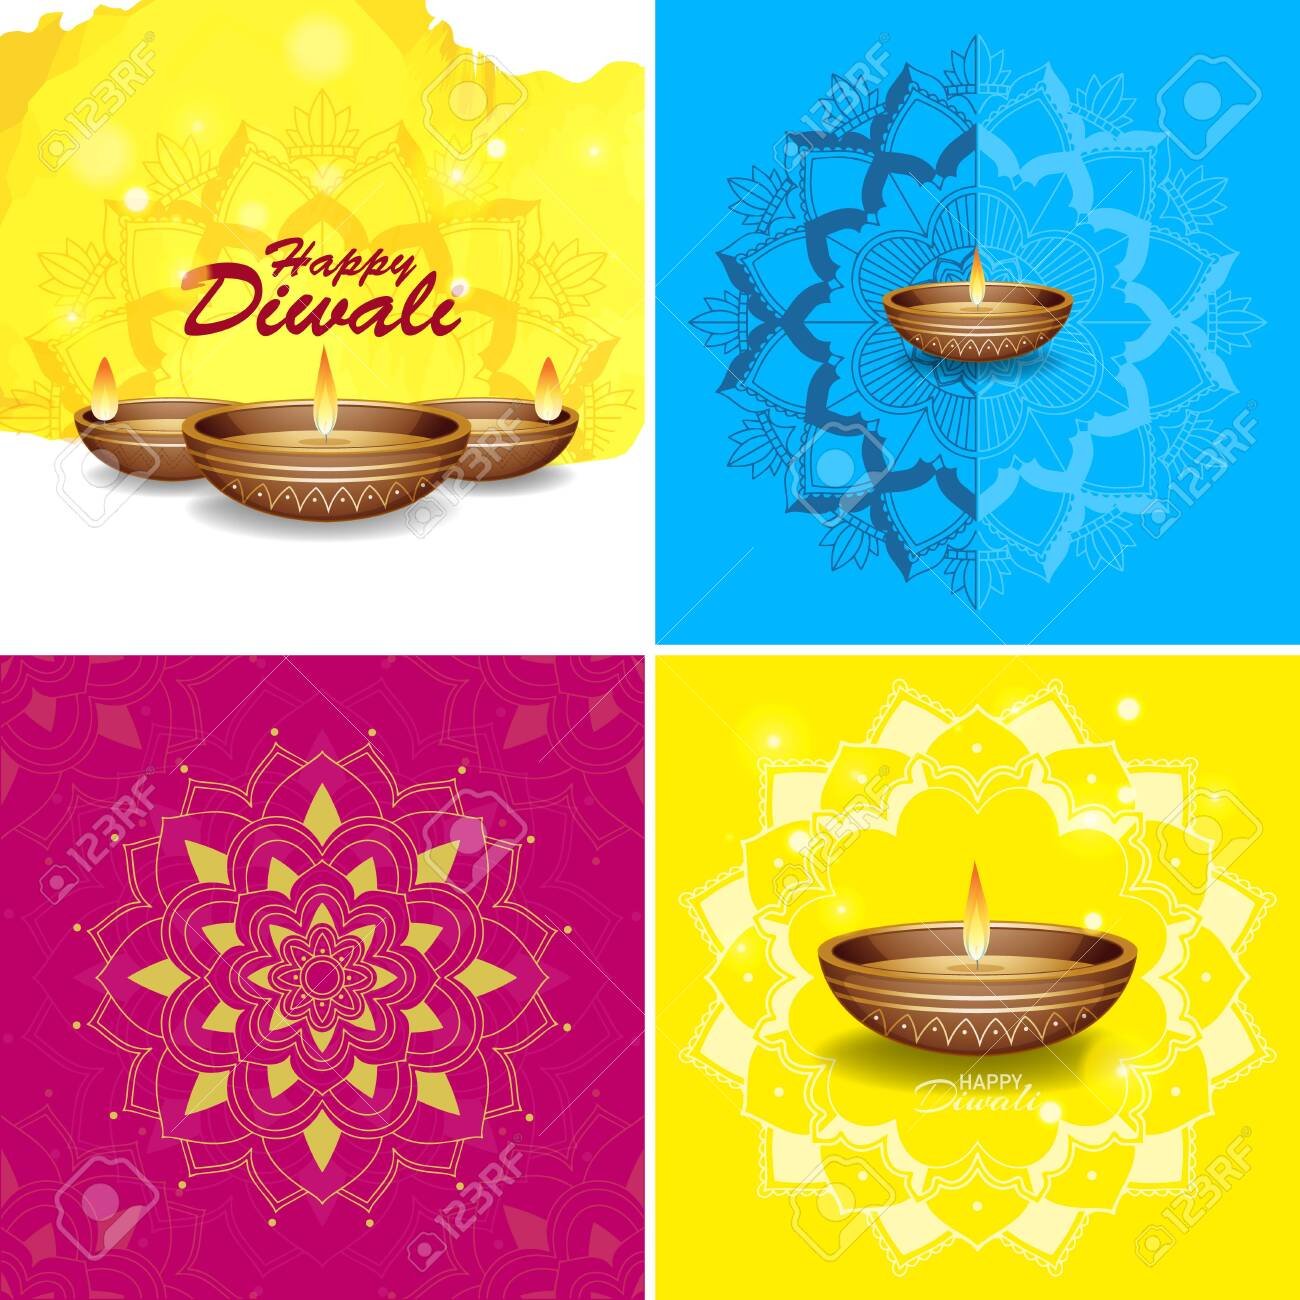 Background Template With Mandala Designs Illustration Royalty Free Cliparts Vectors And Stock Illustration Image 139999866